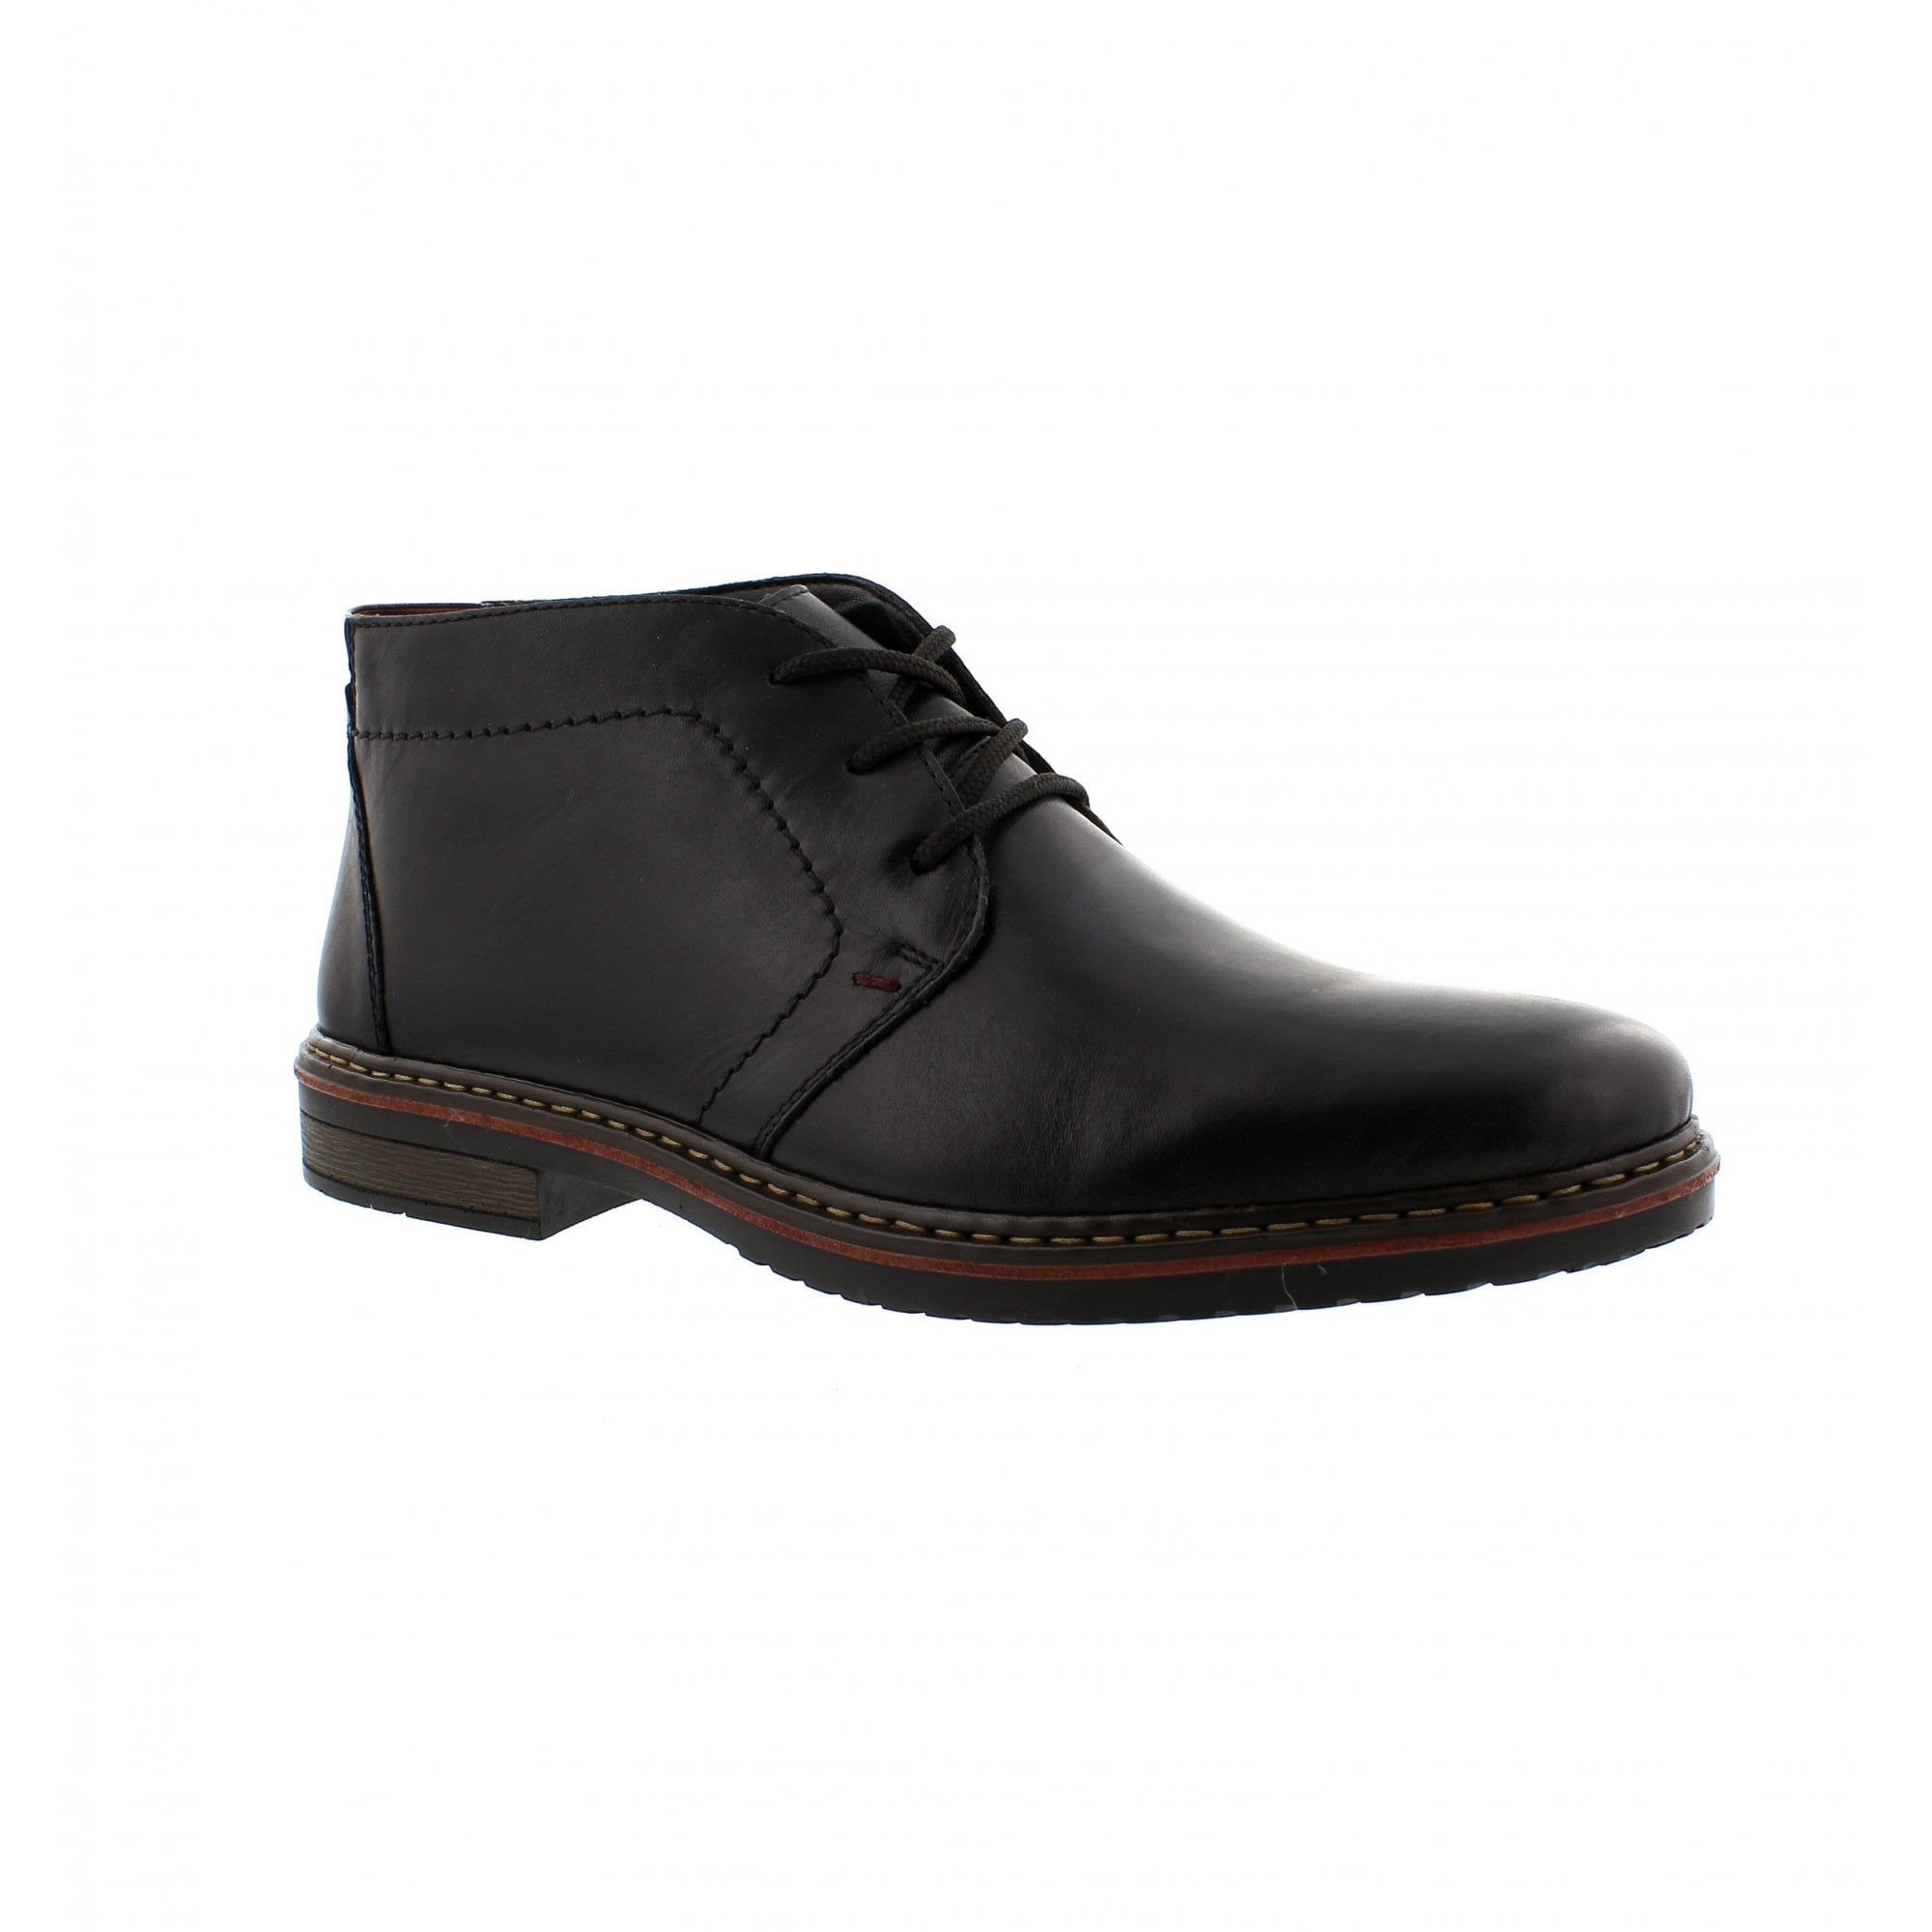 084429ac4d113 Rieker 30423-01 Black Leather Mens Ankle Boots | Rogerson Shoes